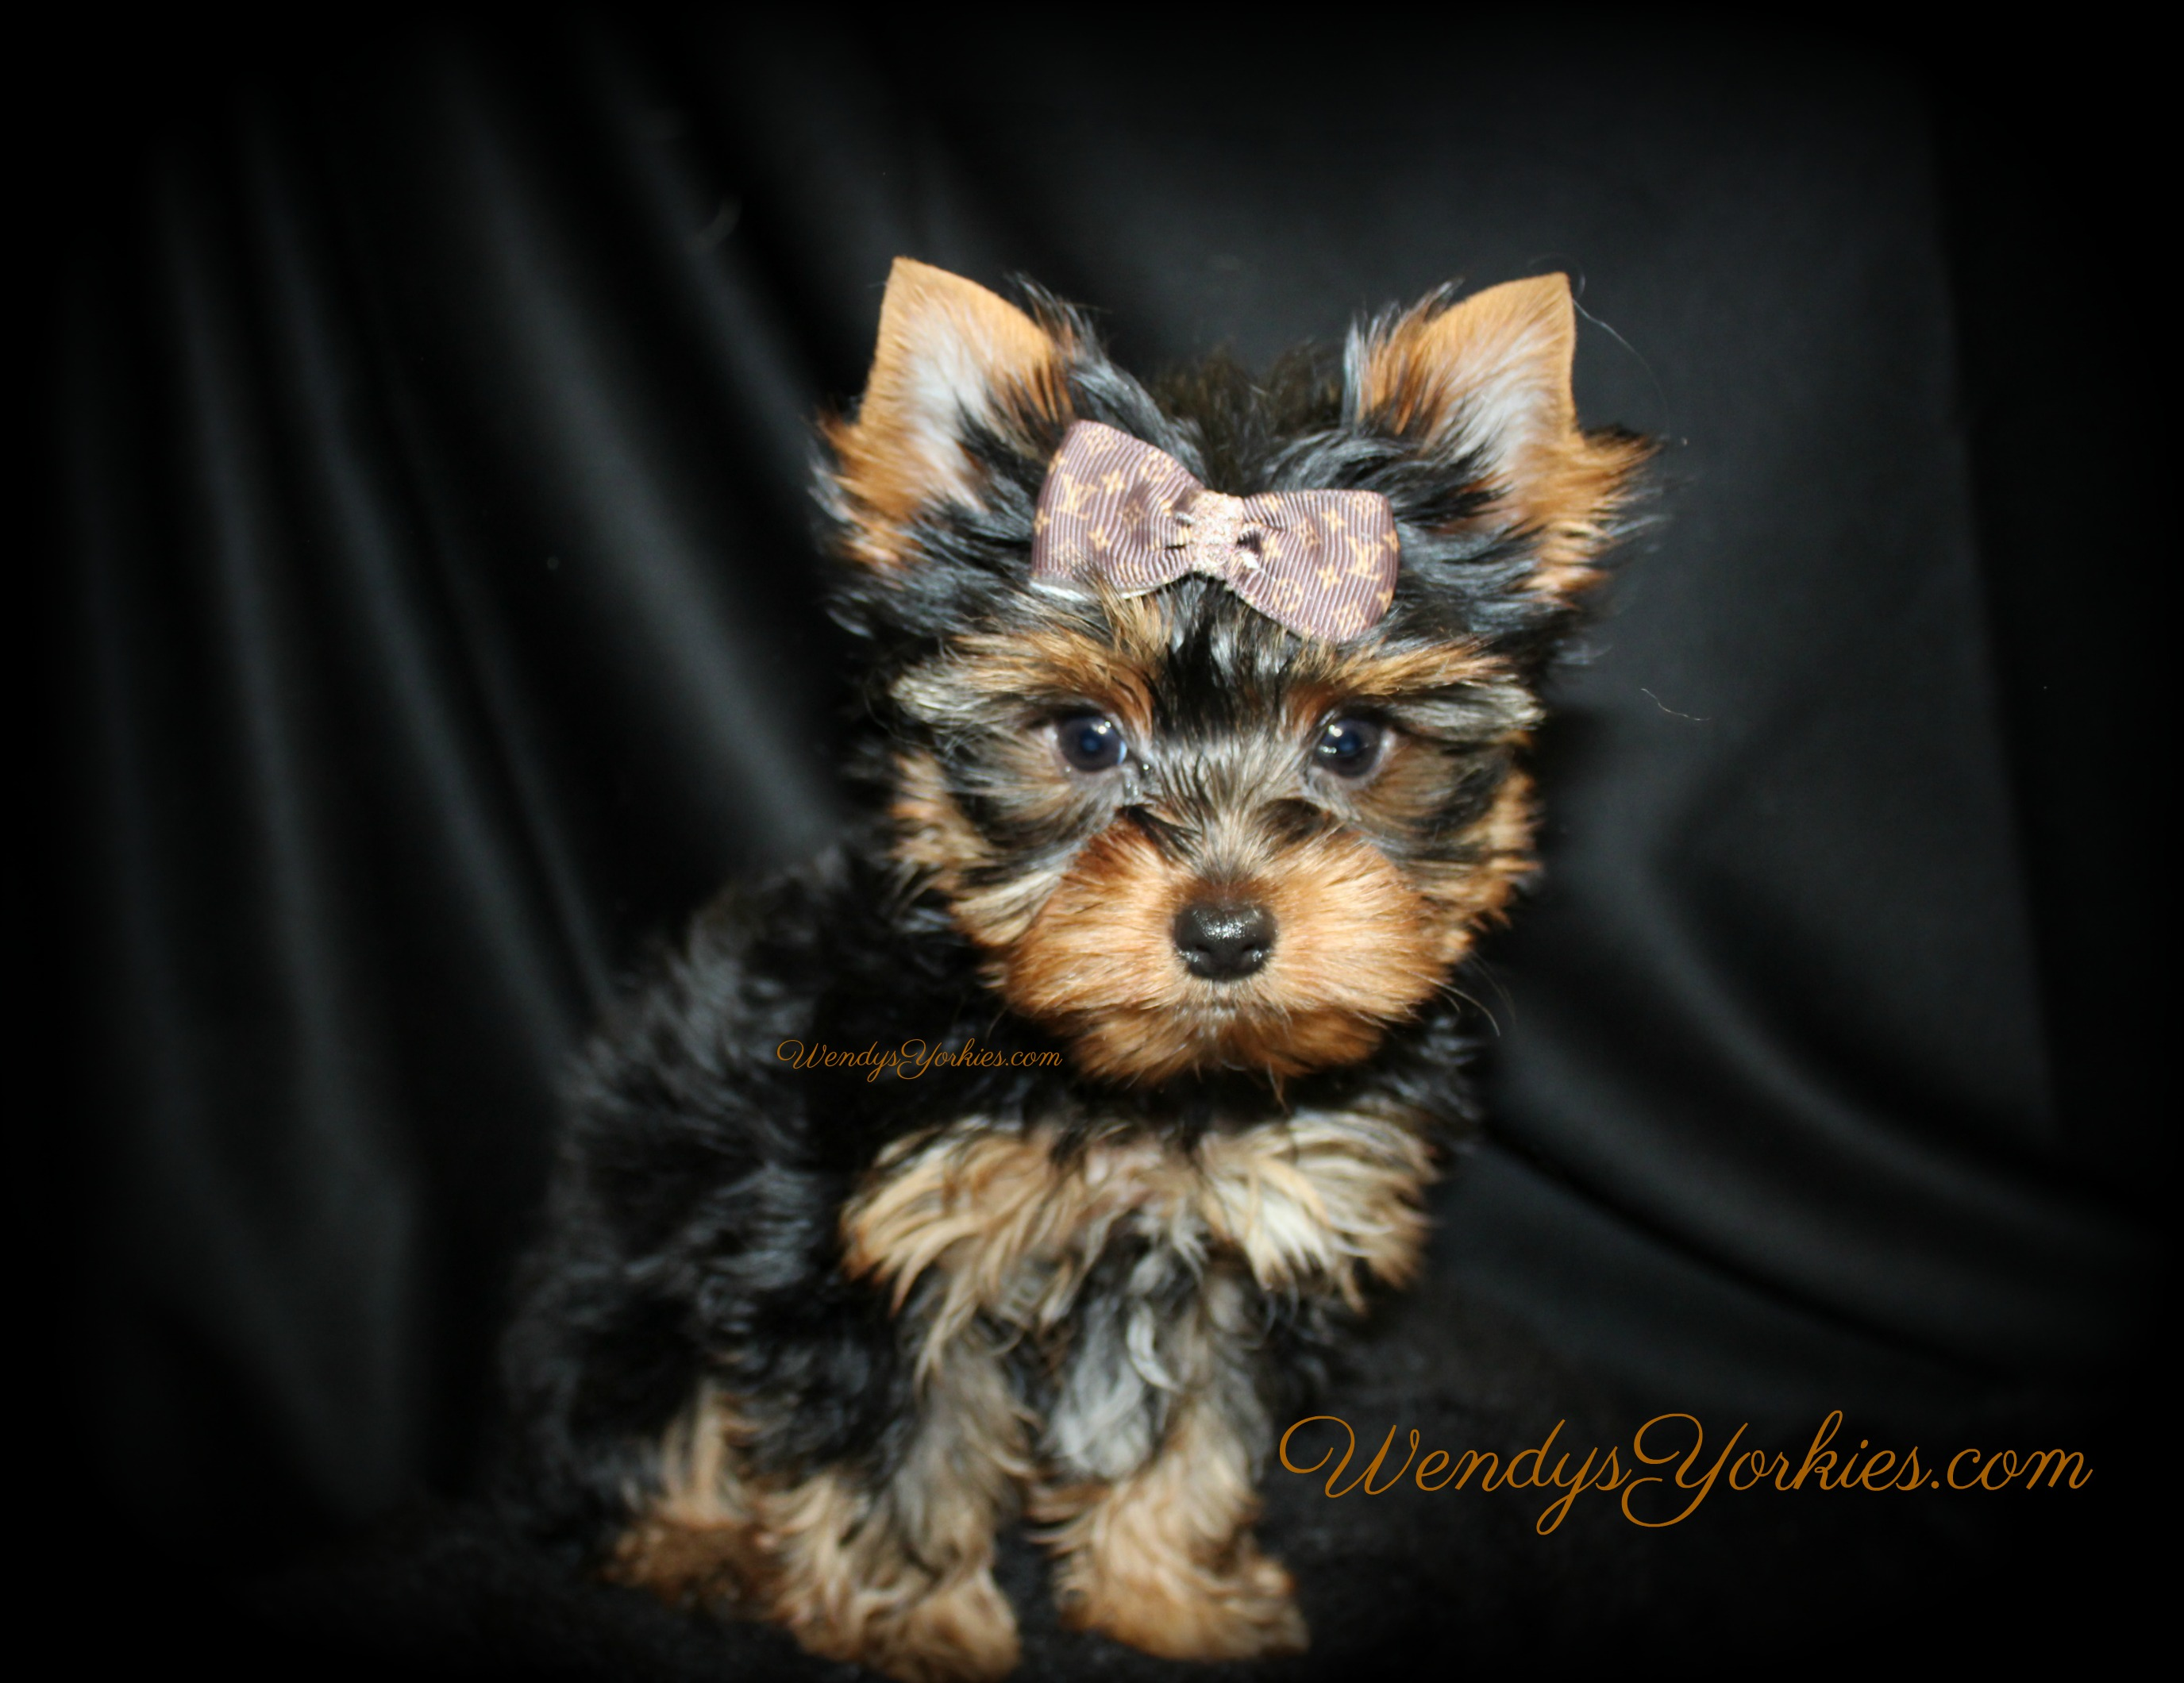 Tiny Male YOrkie puppy for sale, Haley m1, WendysYorkies.com